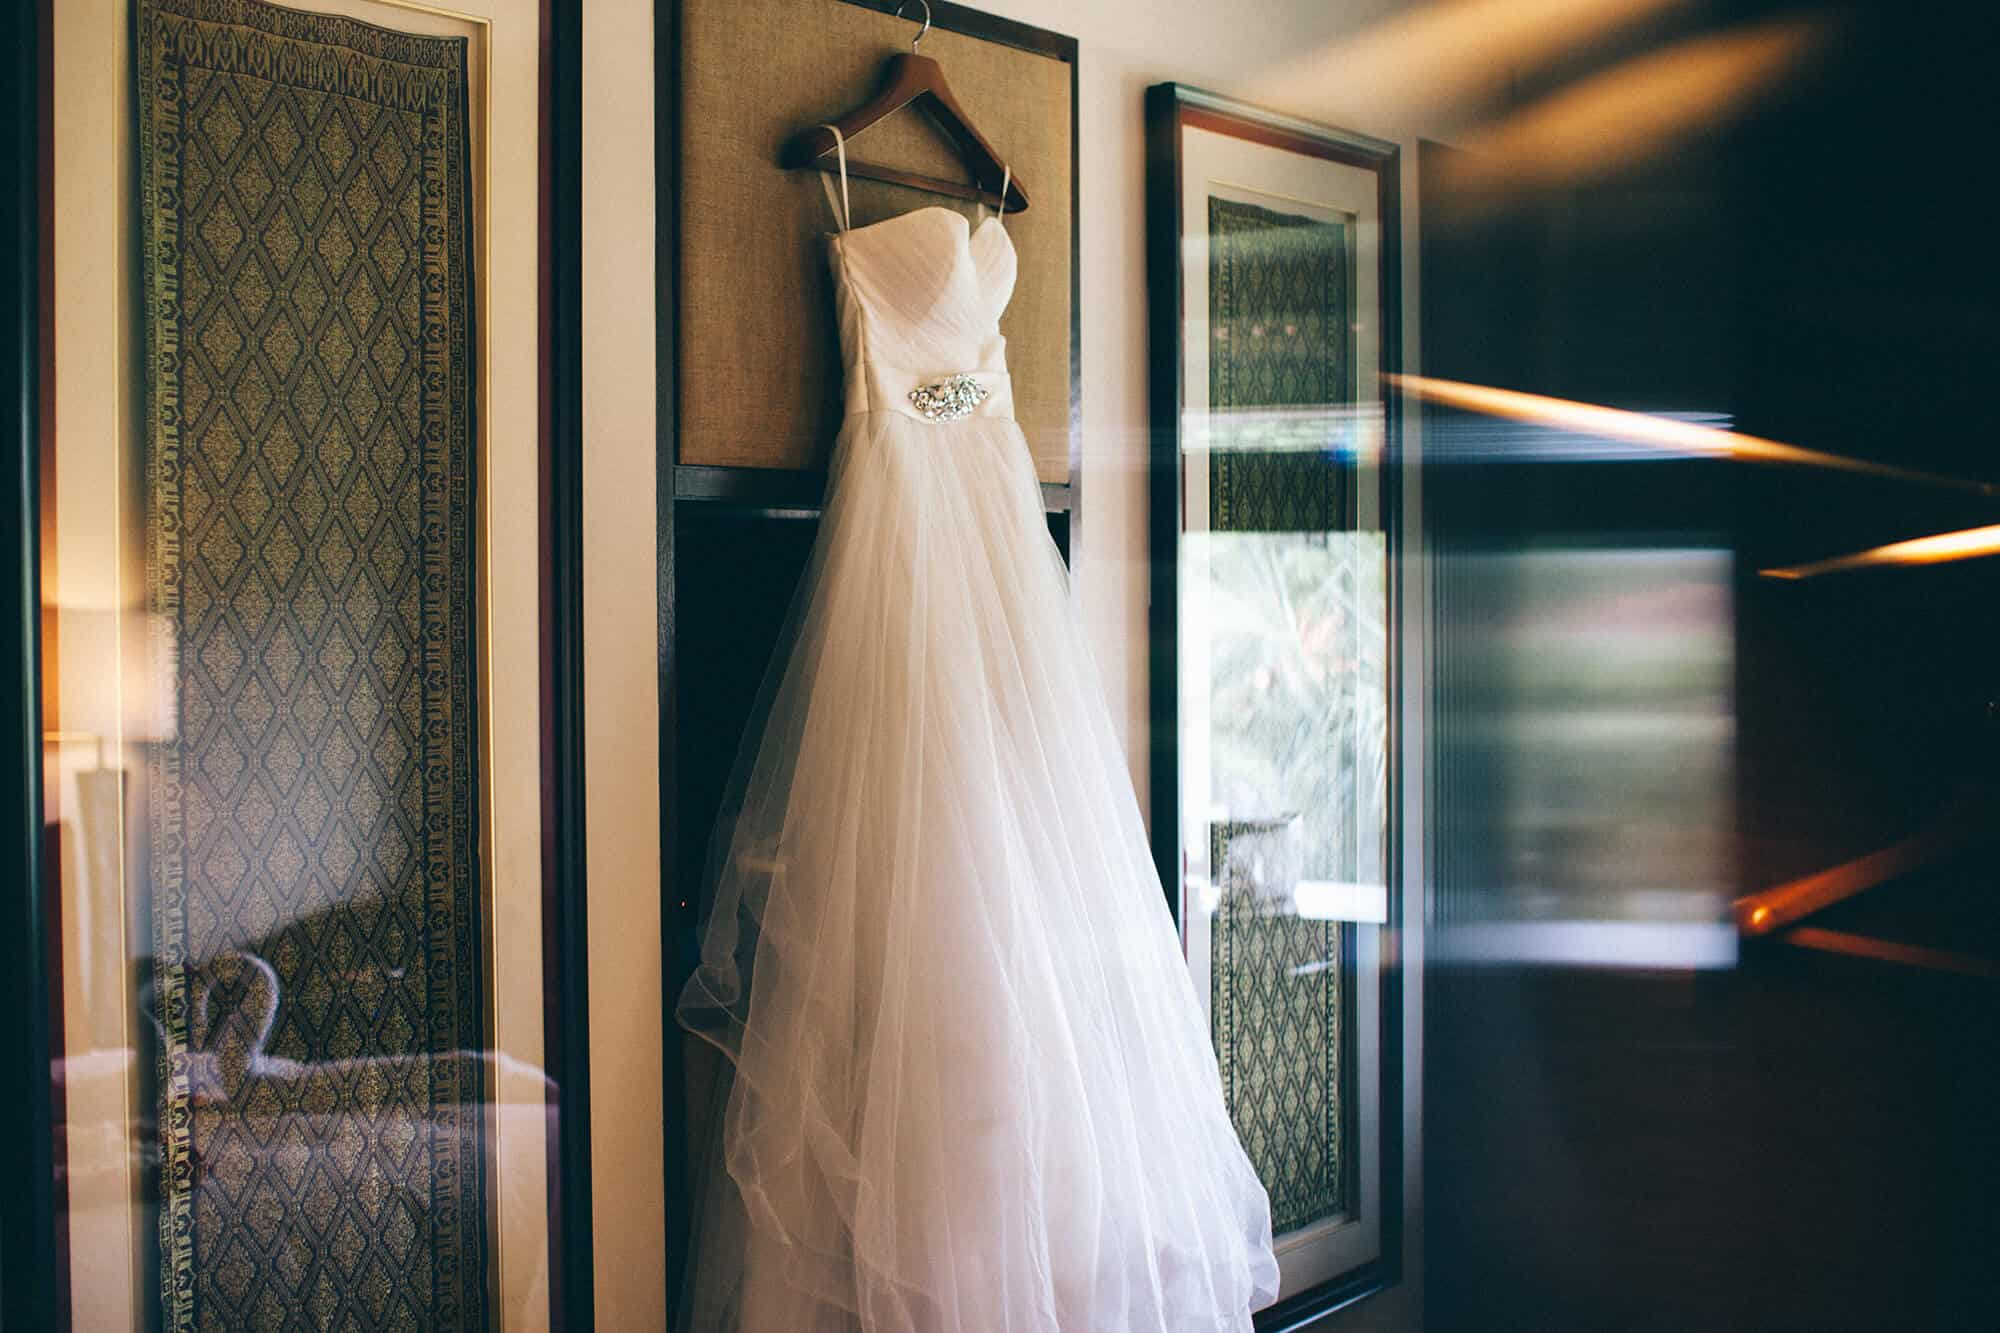 subang saujana hotel and resorts wedding reception malaysia wedding photographer cliff choong of dennis yap photography wedding bridal gown